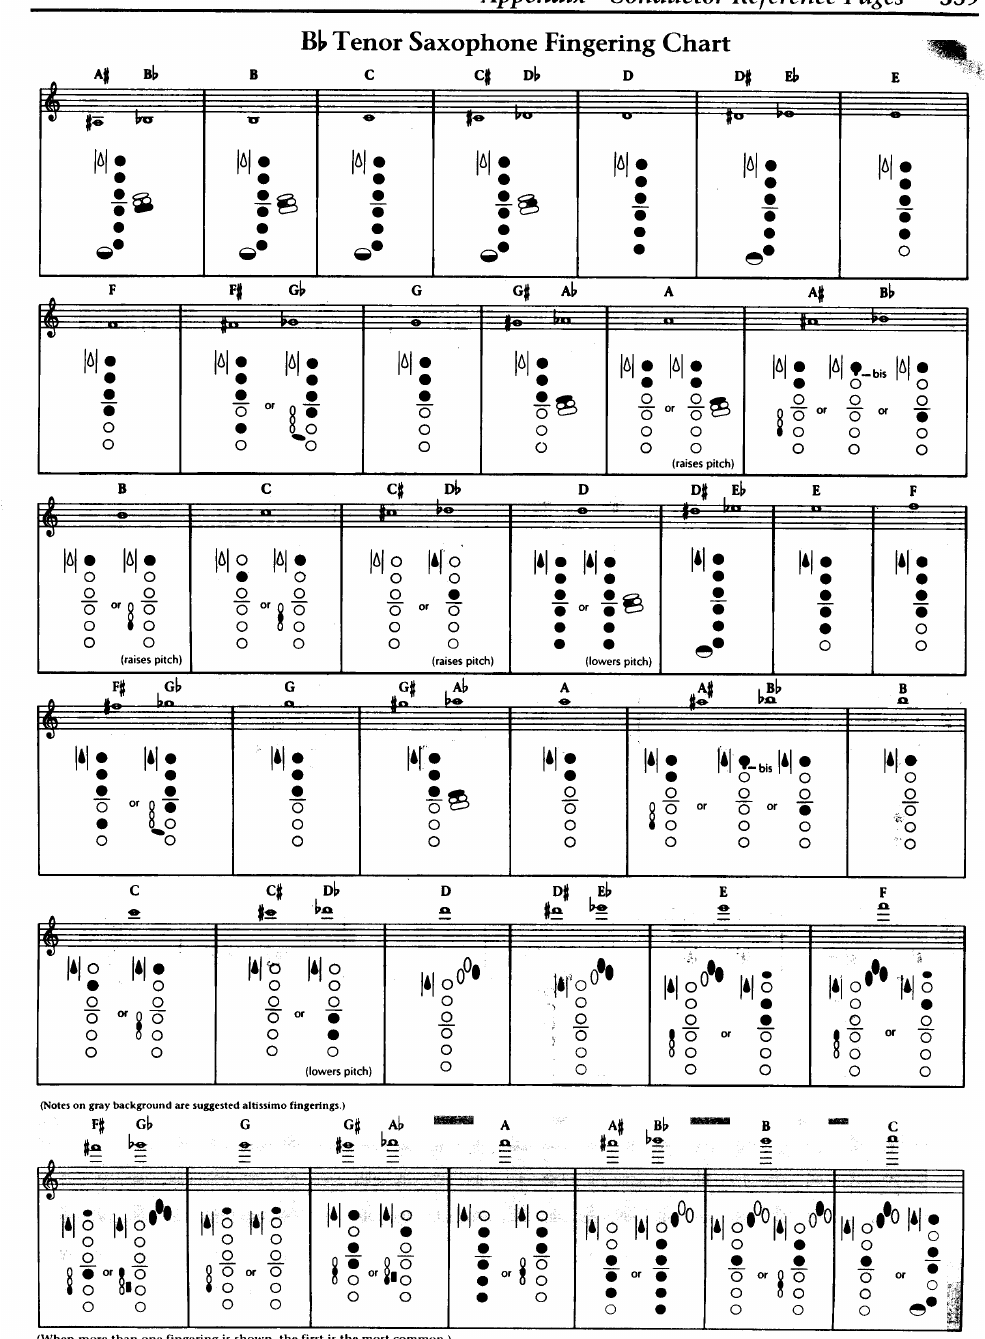 image about Clarinet Finger Chart for Beginners Printable named Clarinet Fingering Chart Printable